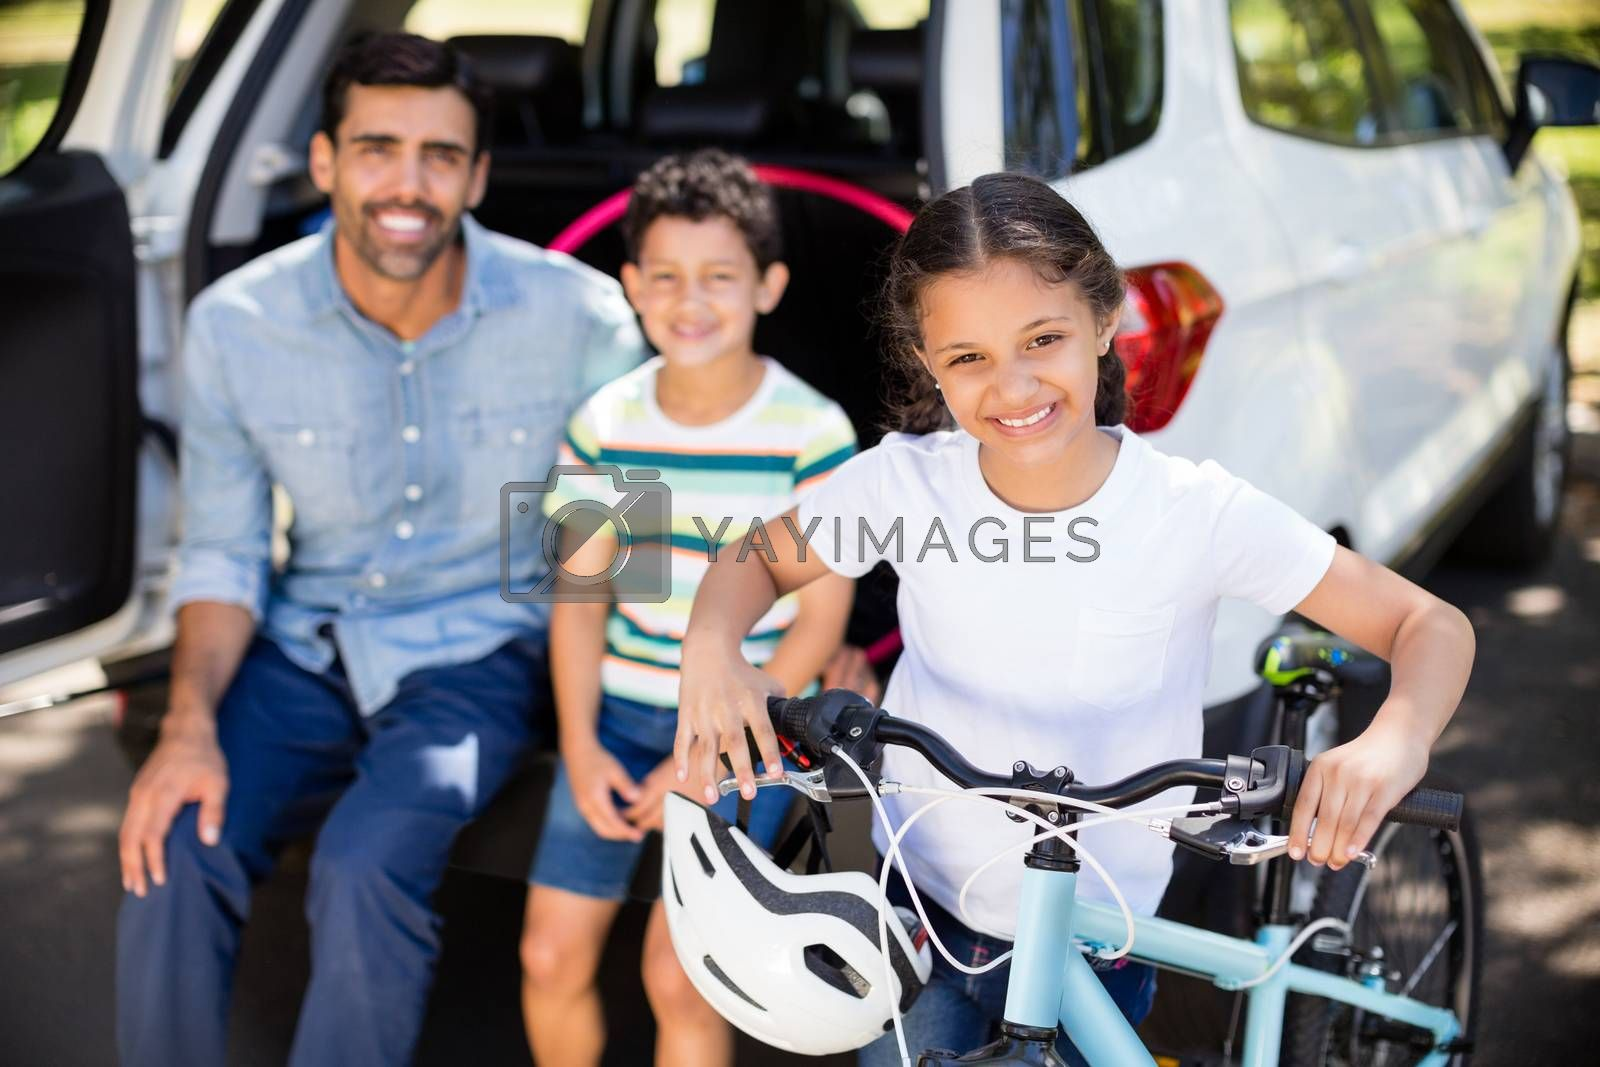 Portrait of father with son and daughter having fun in park by Wavebreakmedia